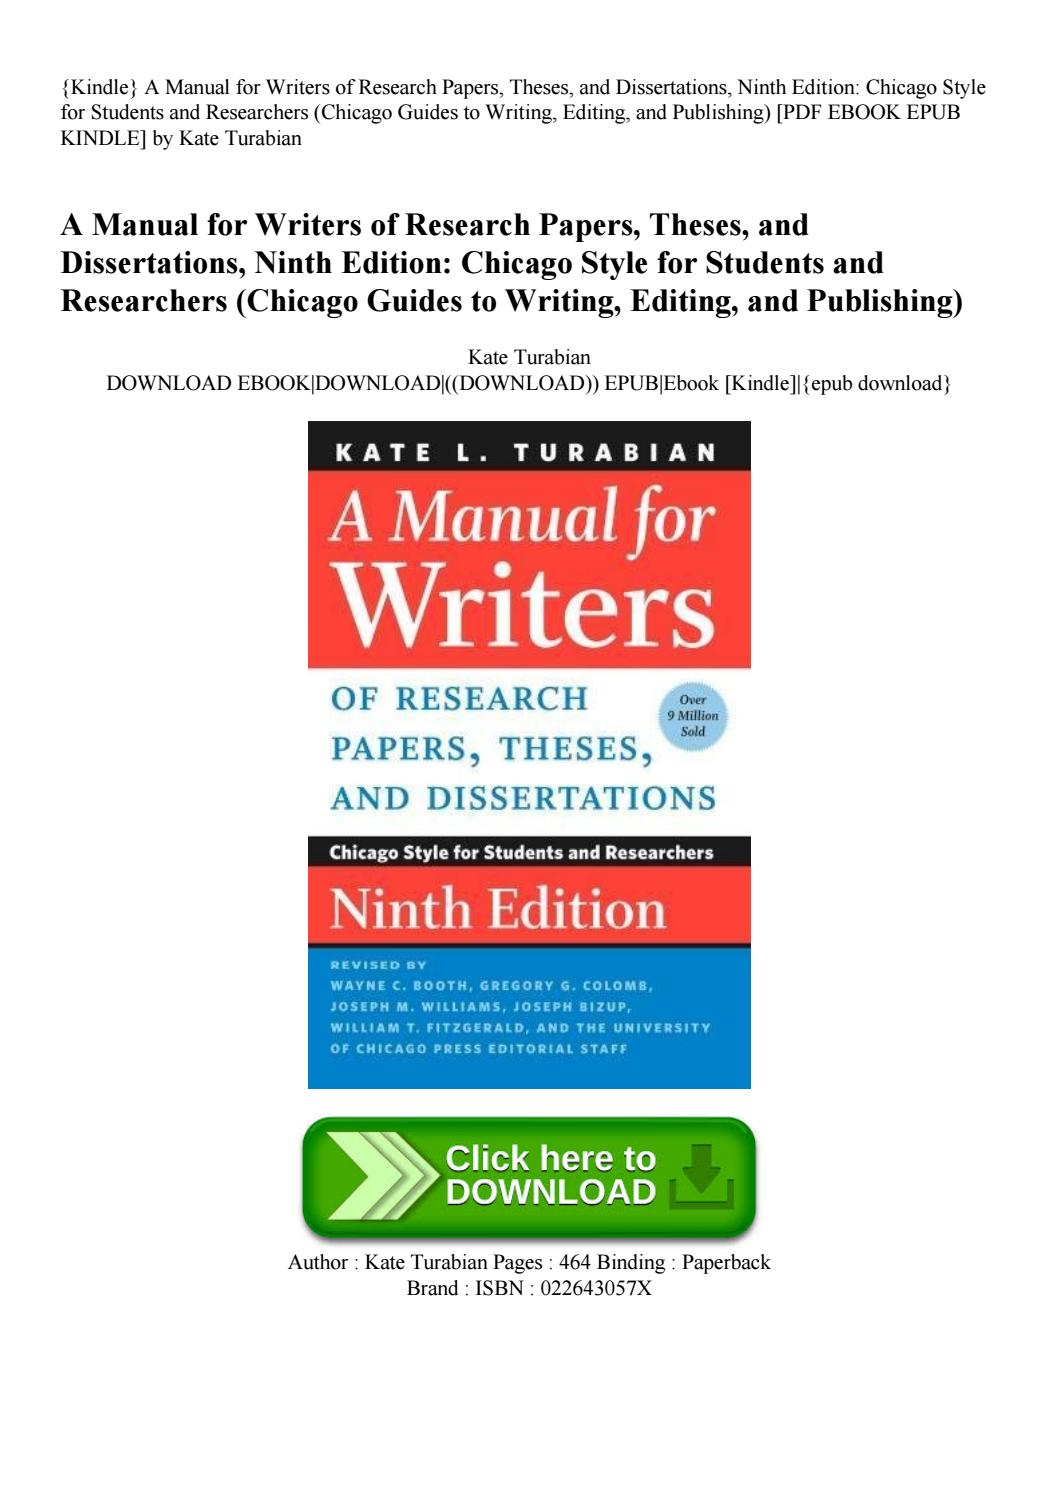 012 Research Paper Manual For Writers Of Papers Theses And Dissertations Page 1 Magnificent A Amazon 9th Edition 8th 13 Full